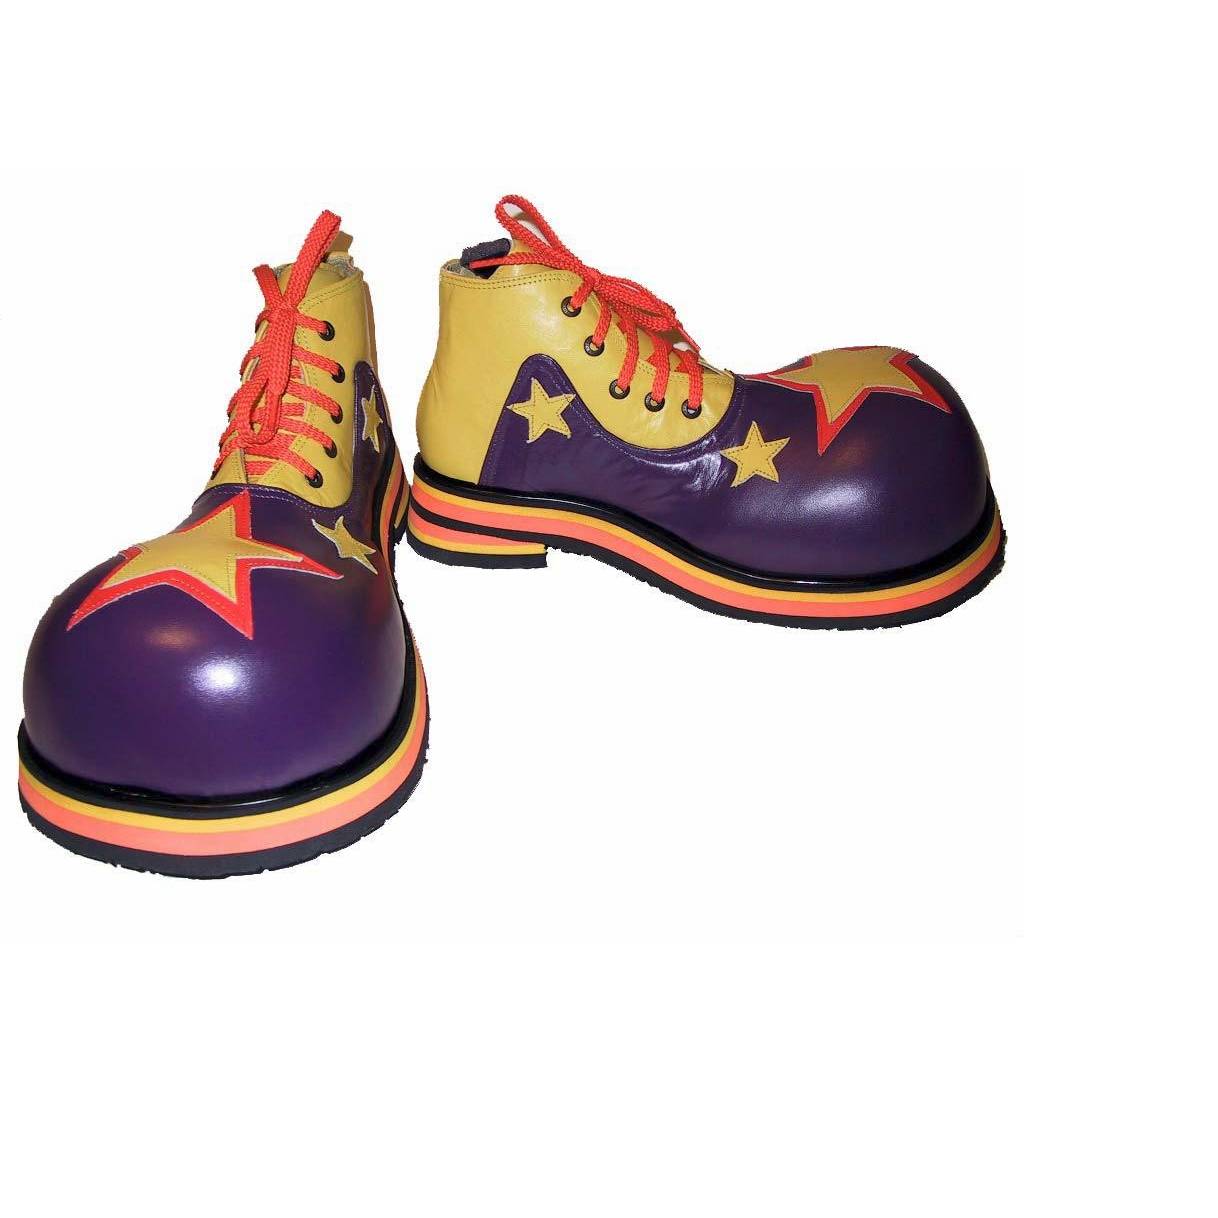 Clown Shoes Professional (Model 2)